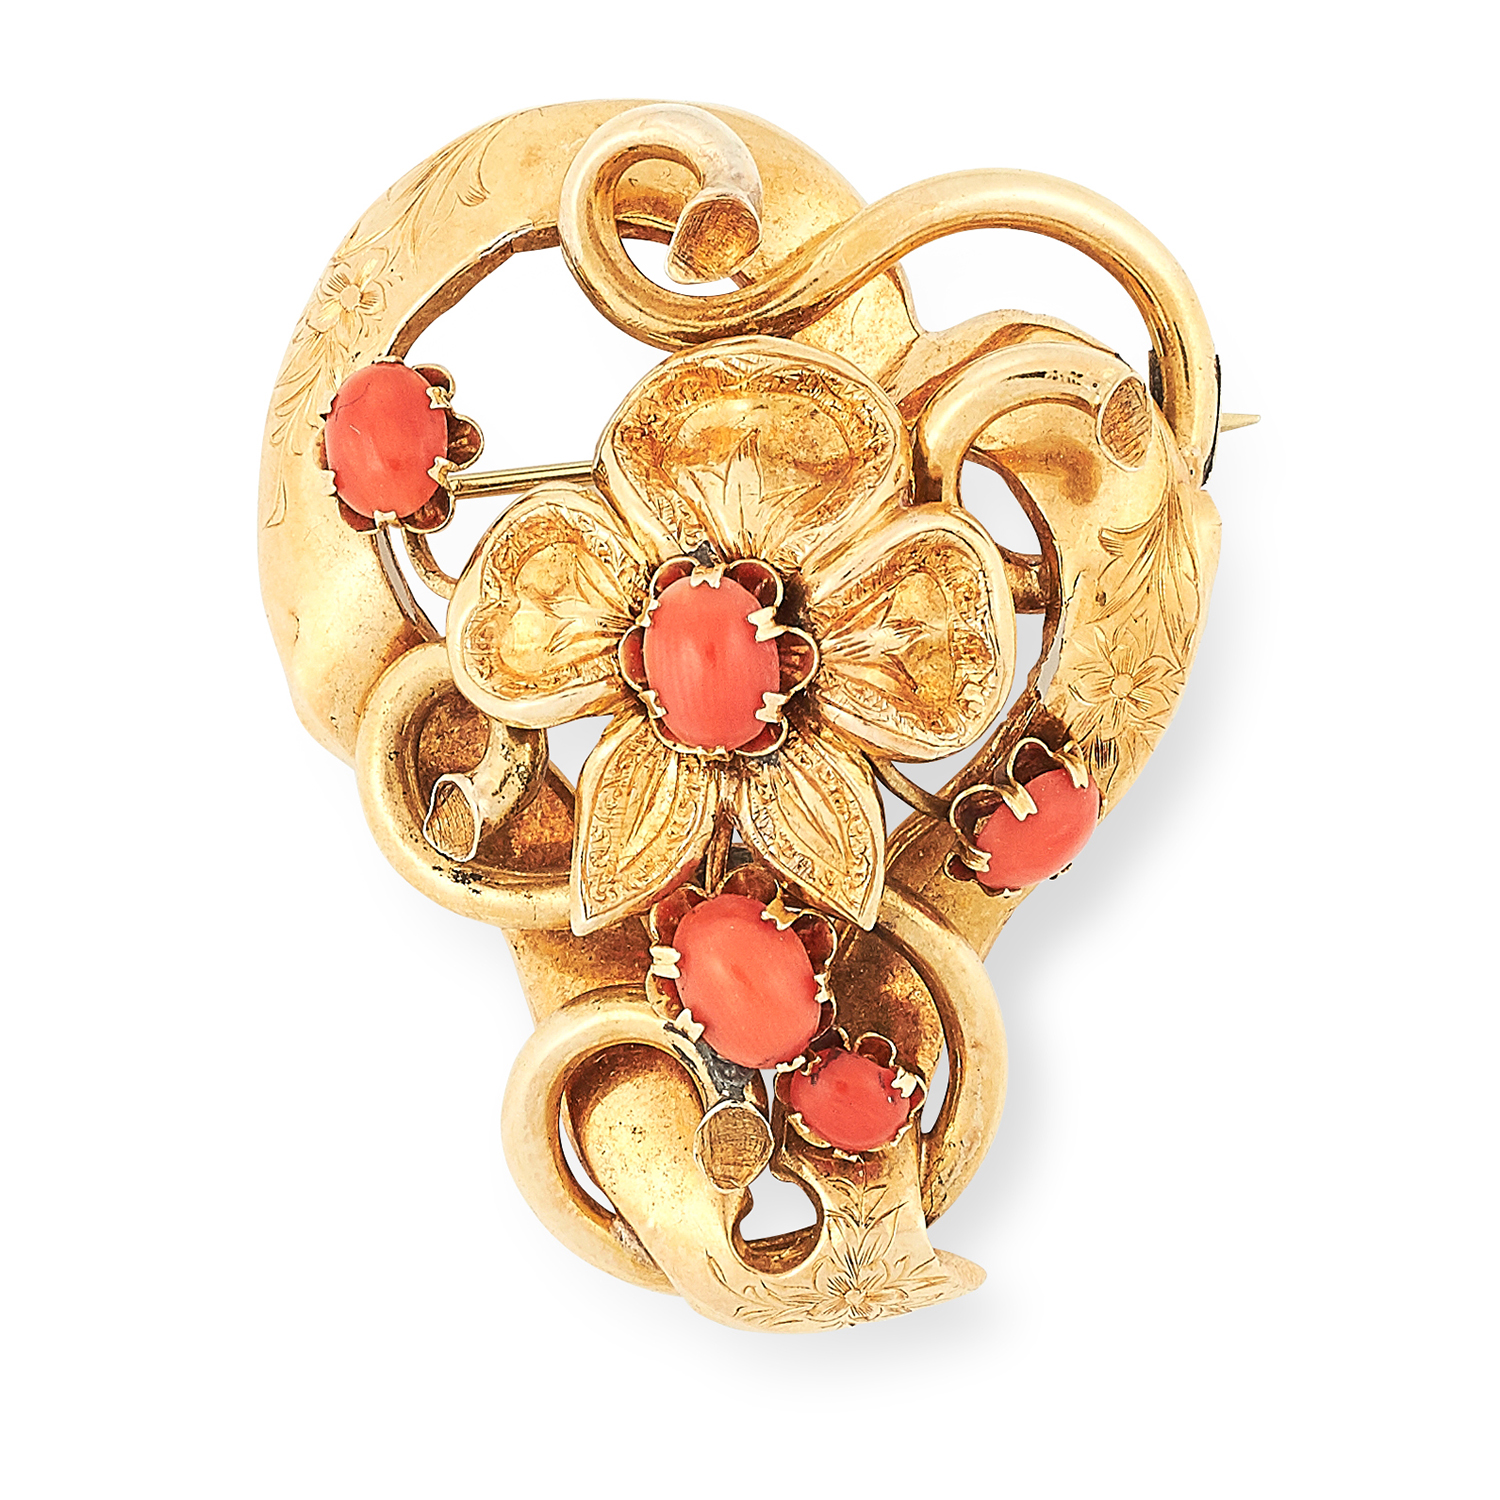 Los 59 - AN ANTIQUE CORAL BROOCH in floral design set with cabochon coral, 4.8cm, 8.8g.